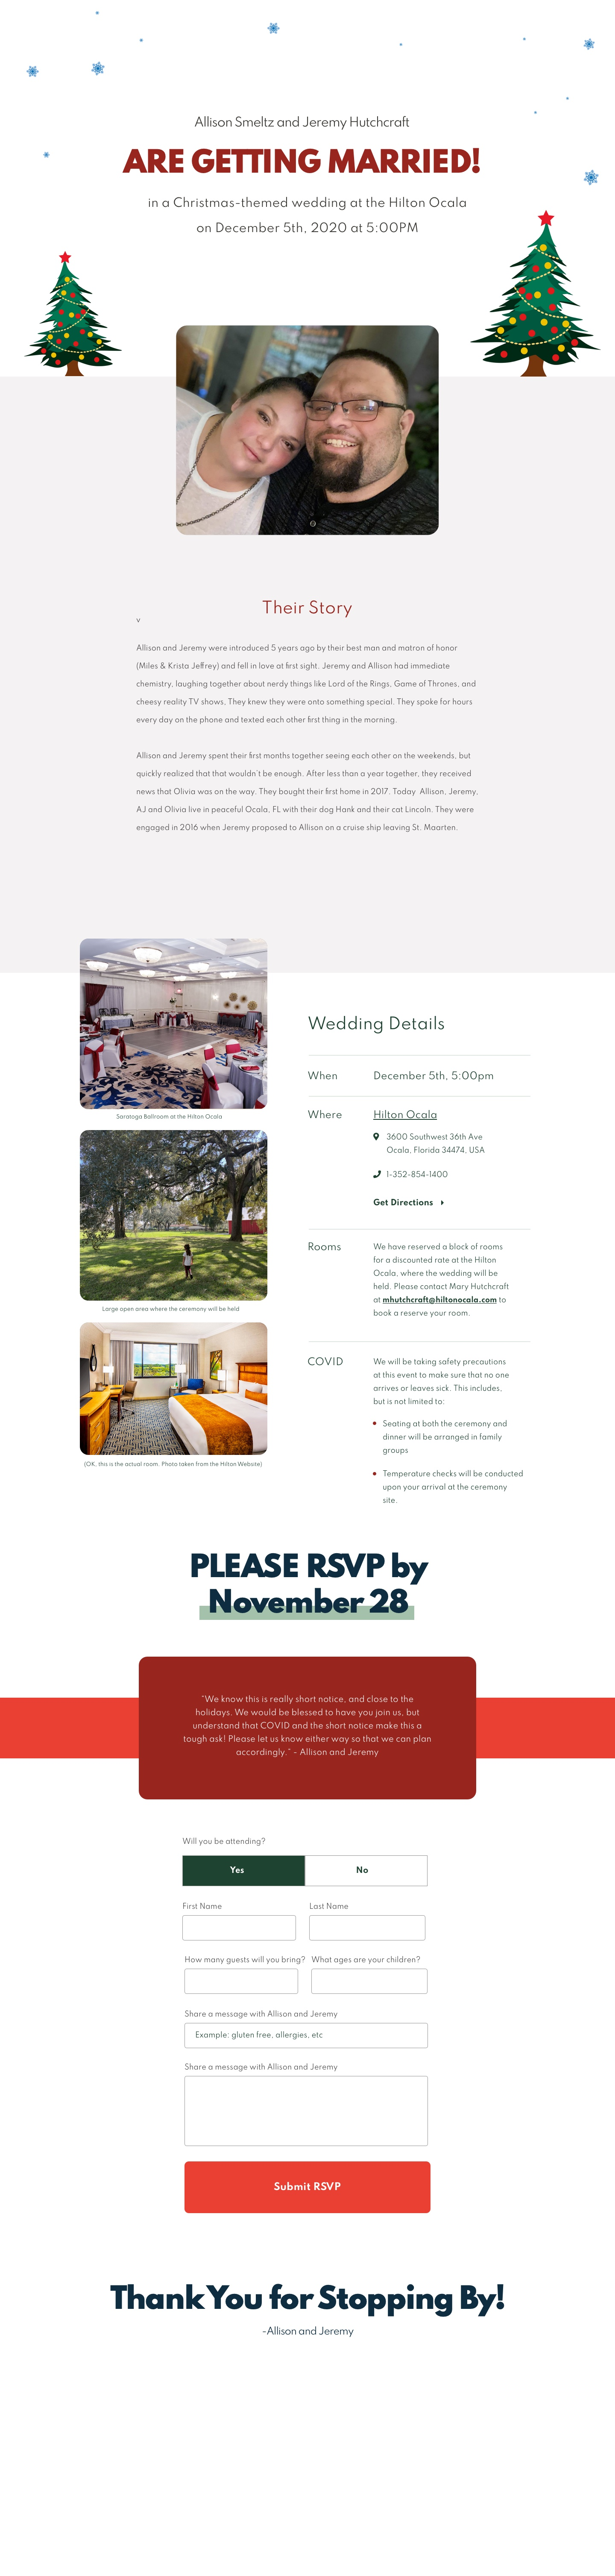 high res image of the our wedding website